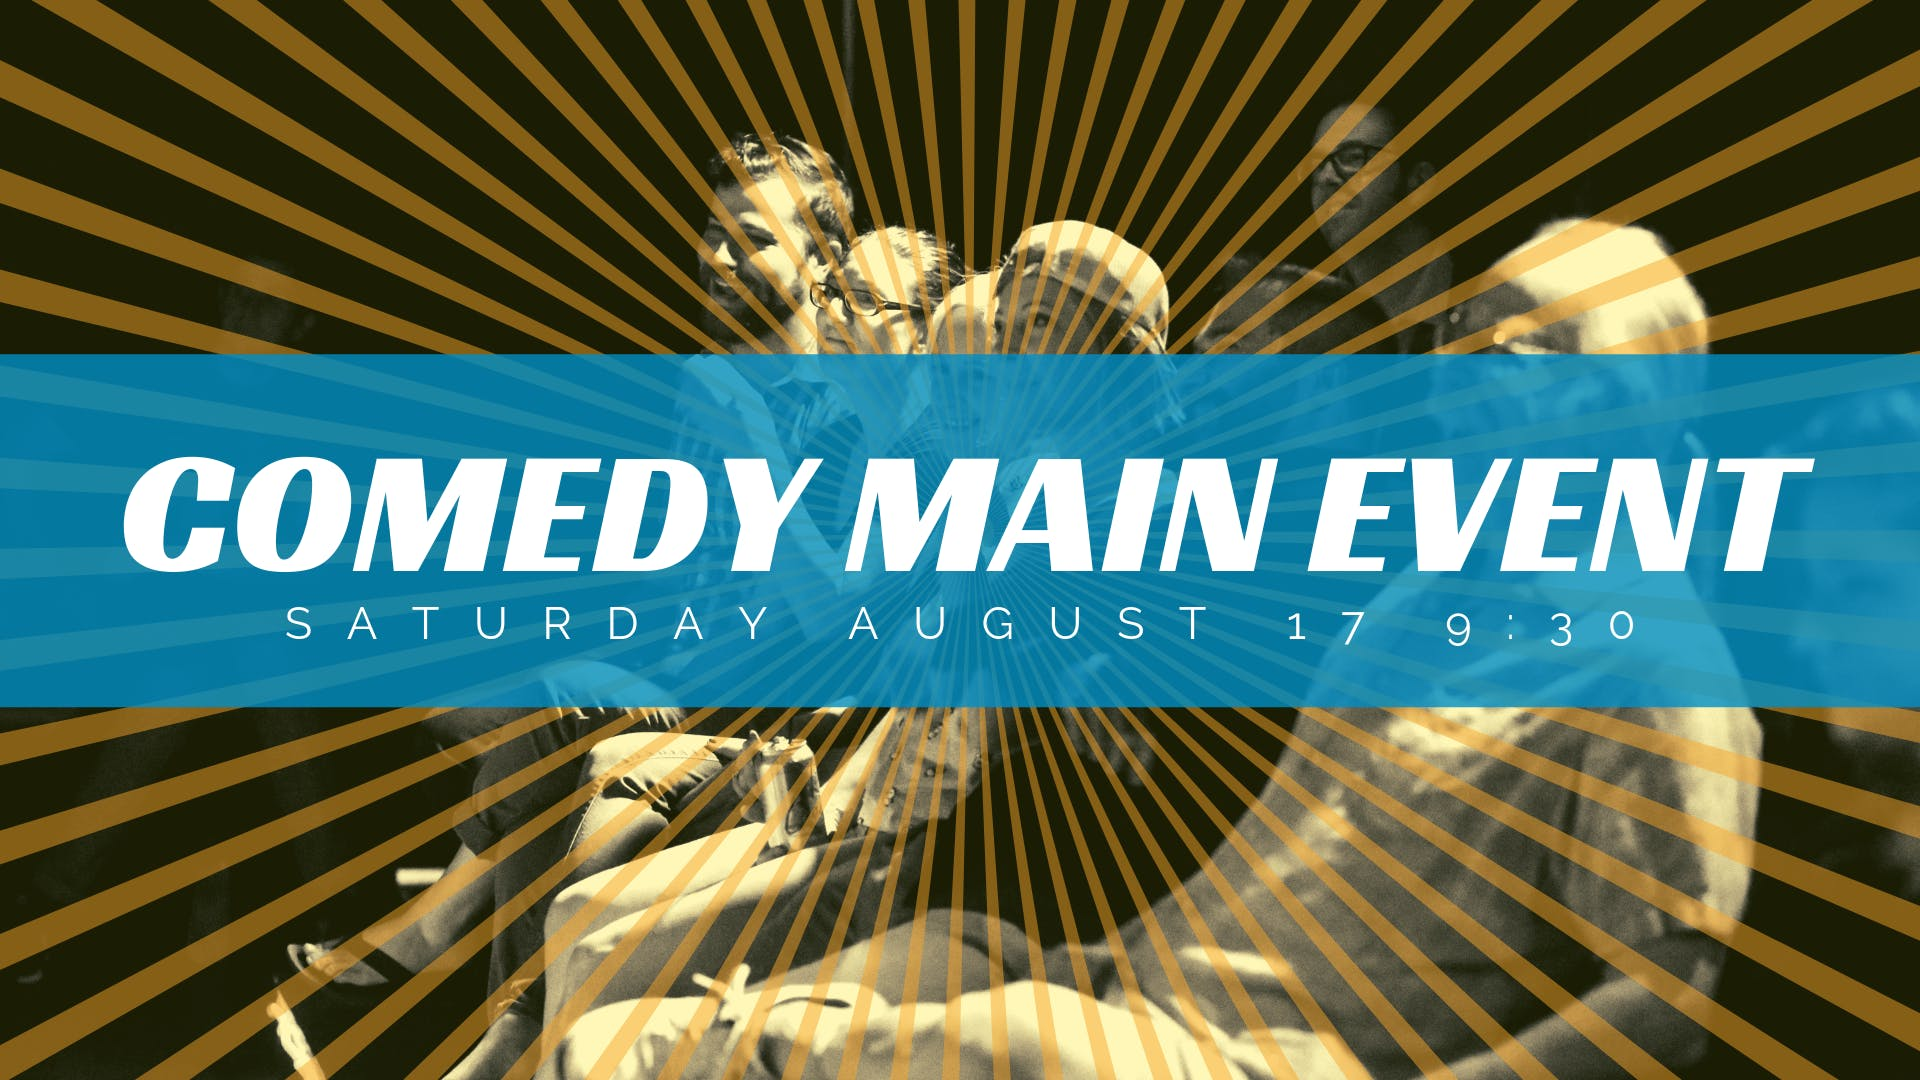 Comedy Main Event